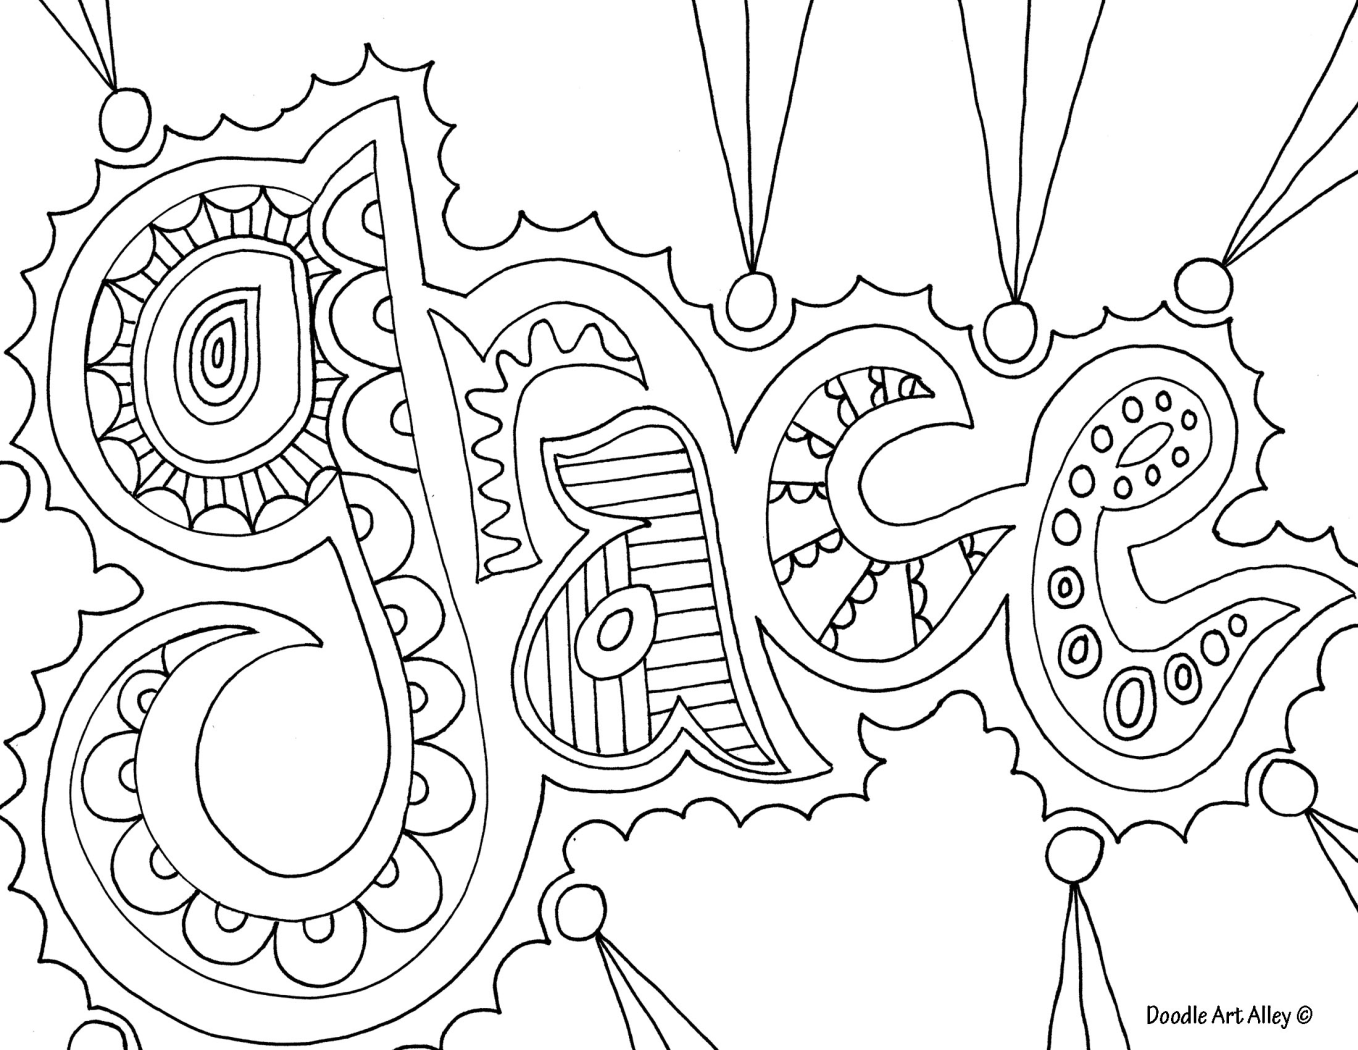 Printable coloring pages with words - Love This For My Teen Girls Would Love To See What They Could Create Out Adult Coloring Pagescoloring